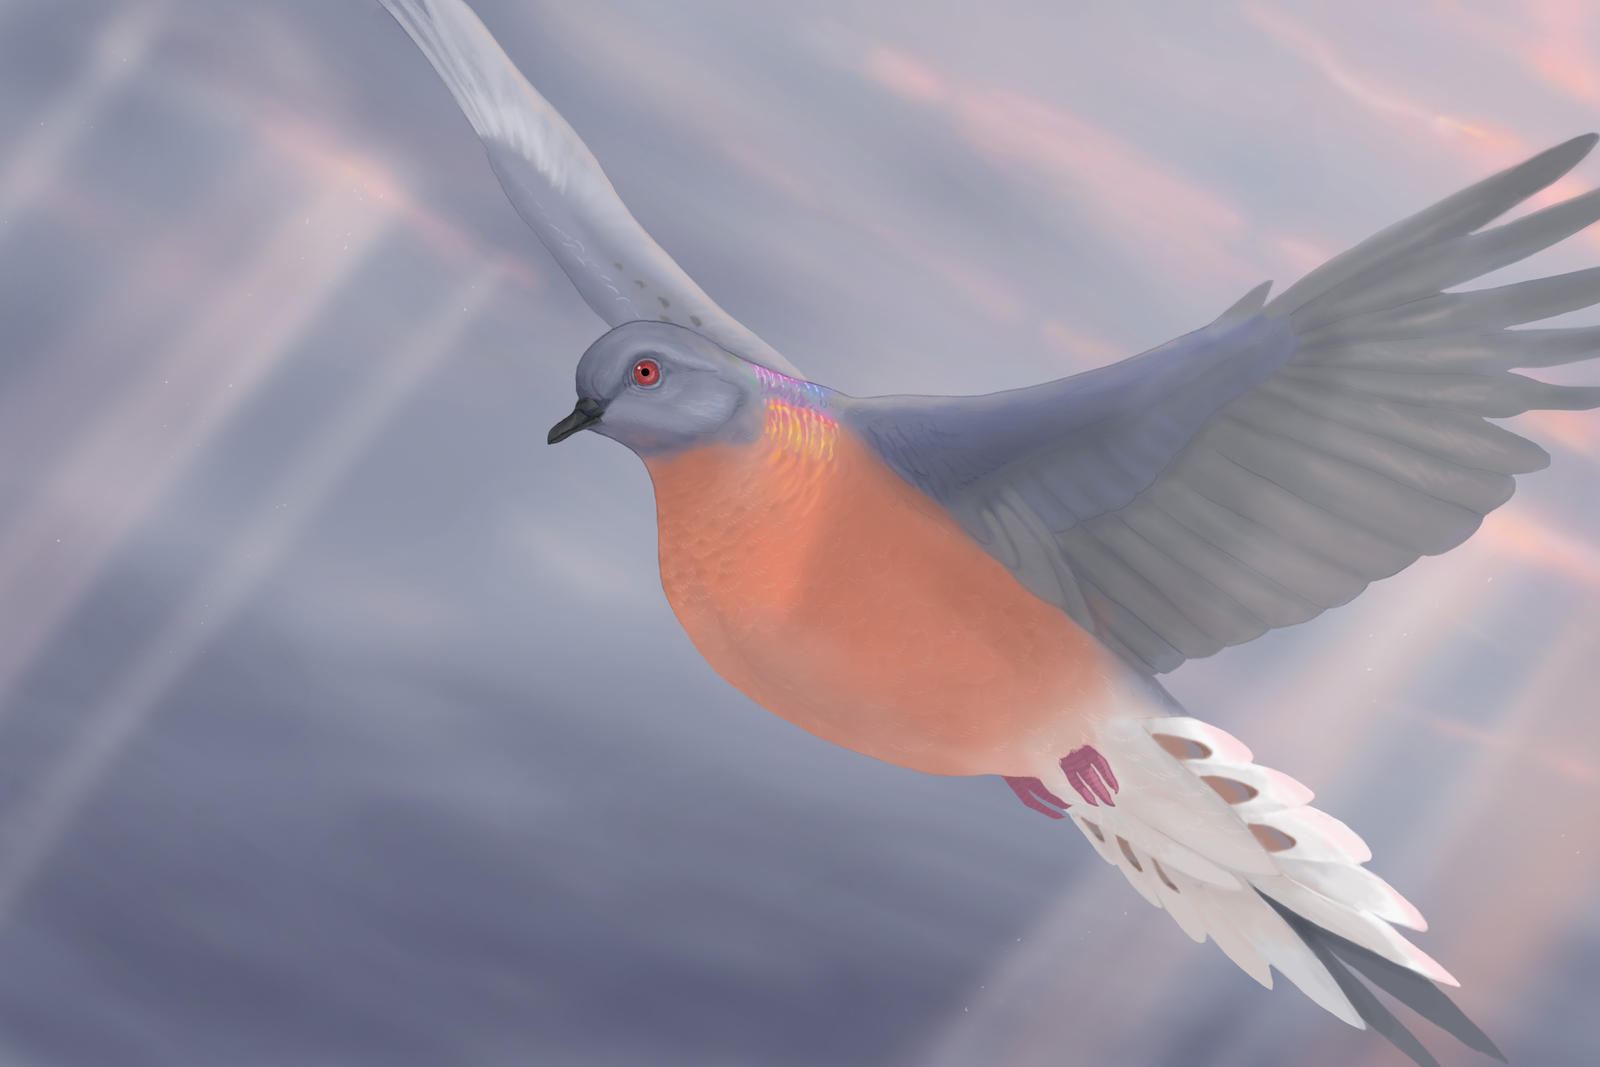 human impact on passenger pigeons Will our human activities unravel the web too much  passenger pigeon specimen residing at millikin university, illinois  a symphony about passenger pigeons.